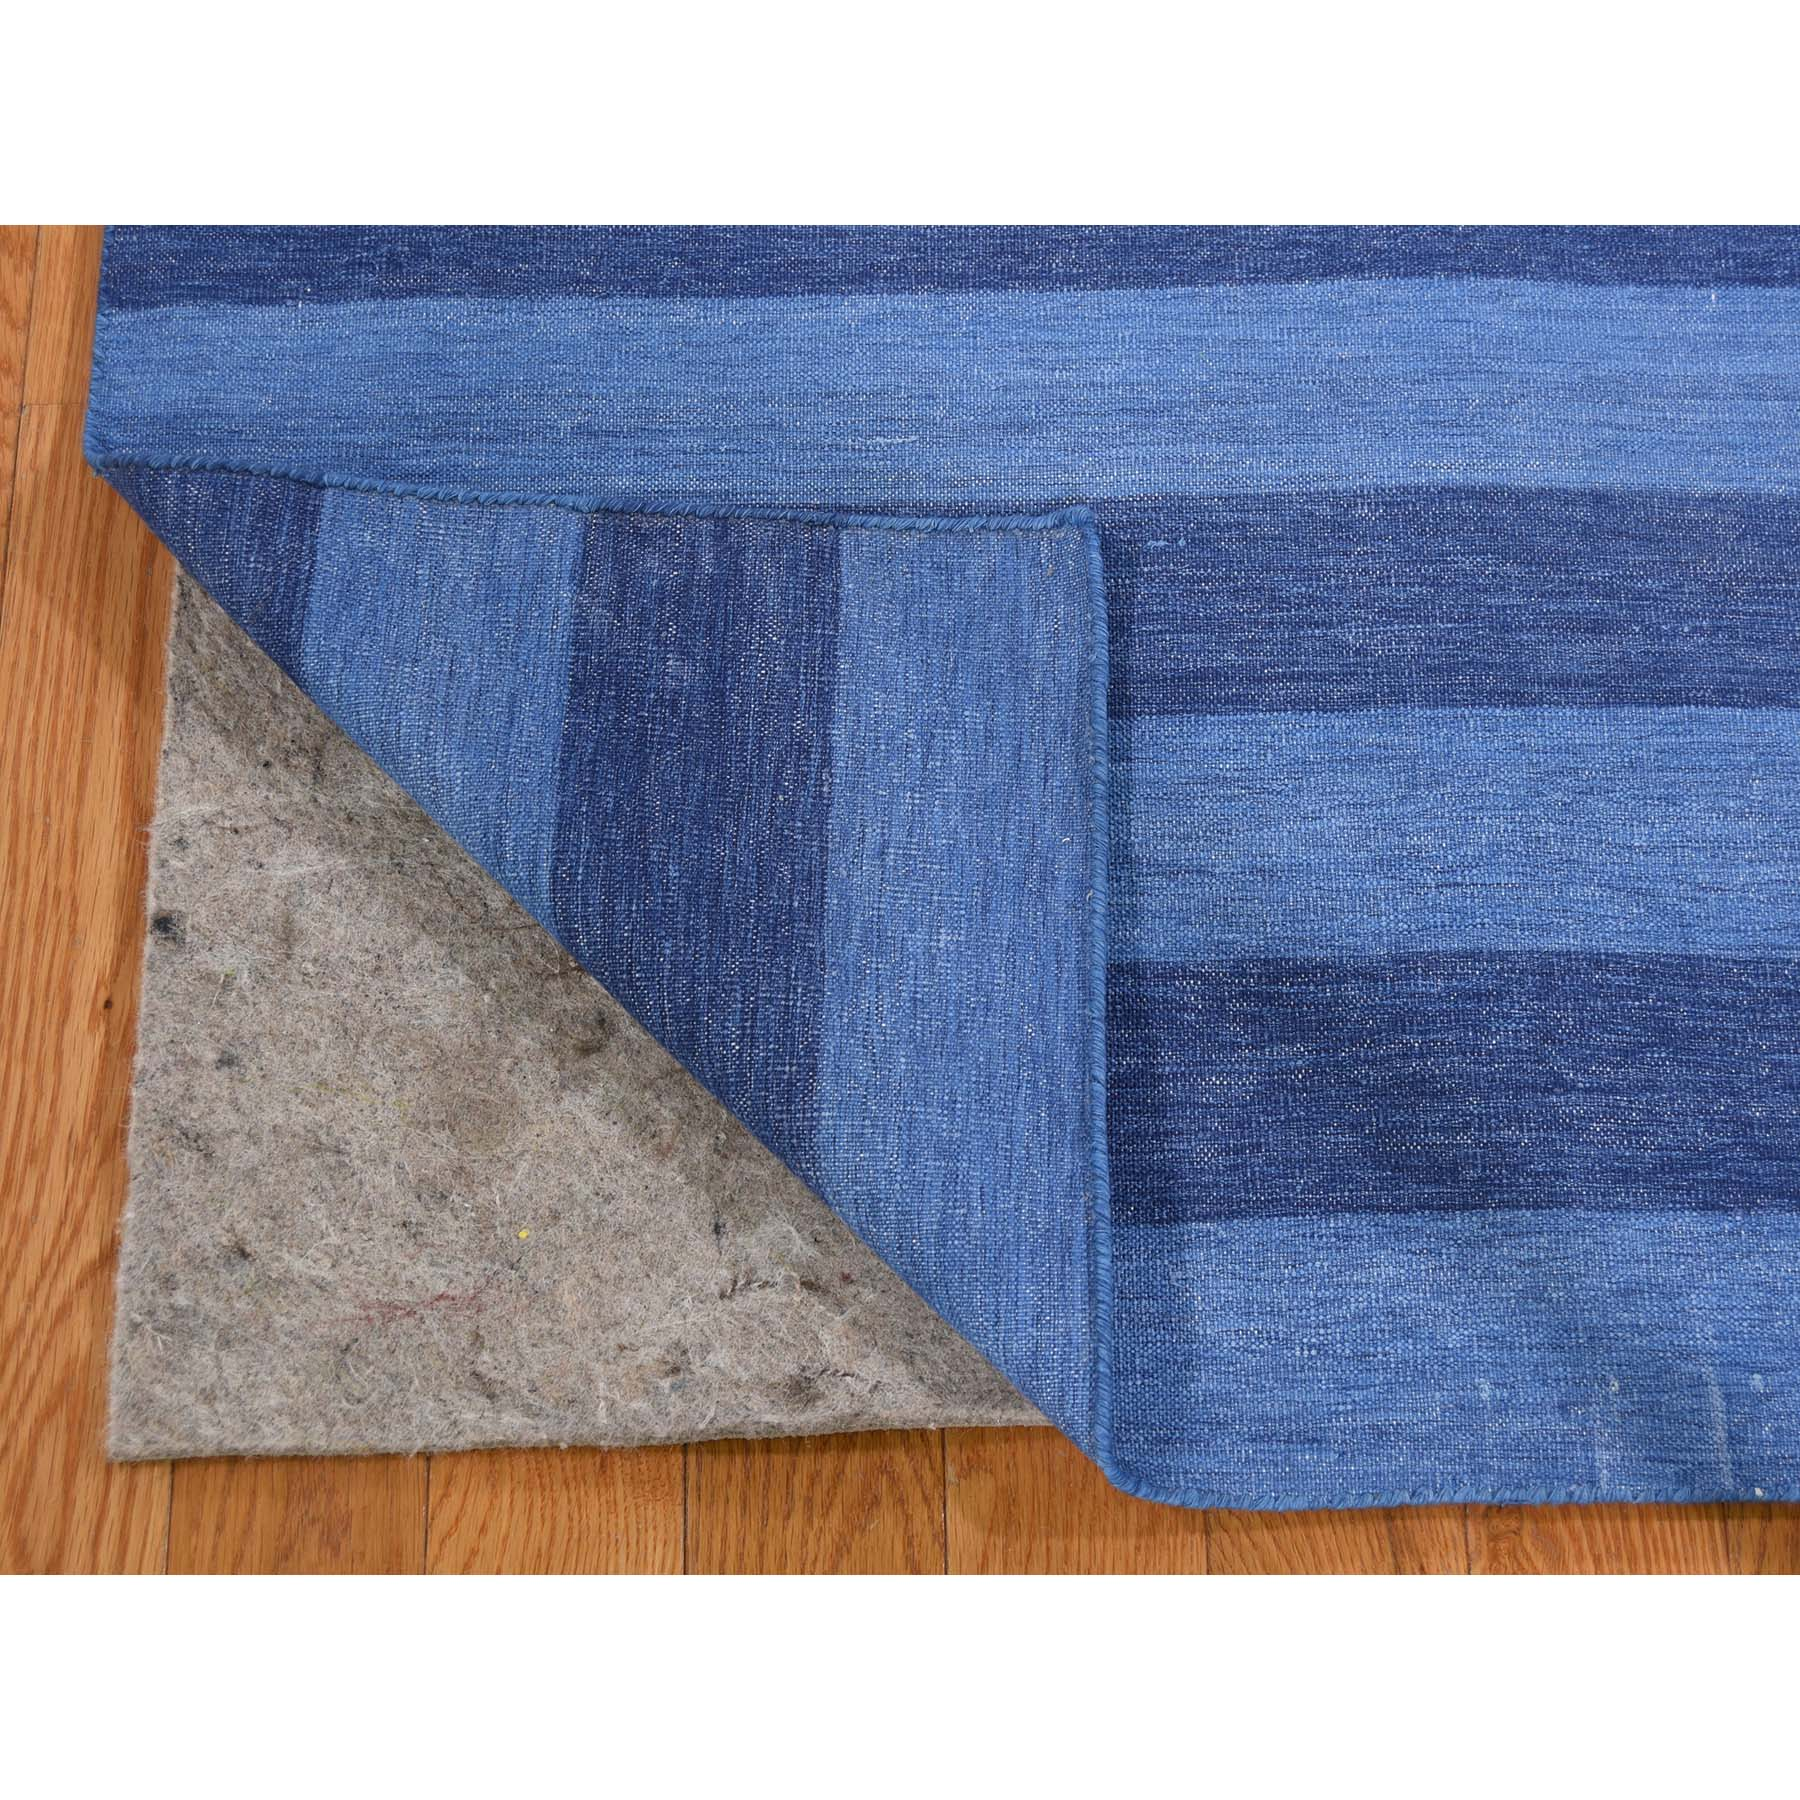 6-x9- Reversible Durie Kilim Flat Weave Pure Cotton Hand Woven Oriental Rug